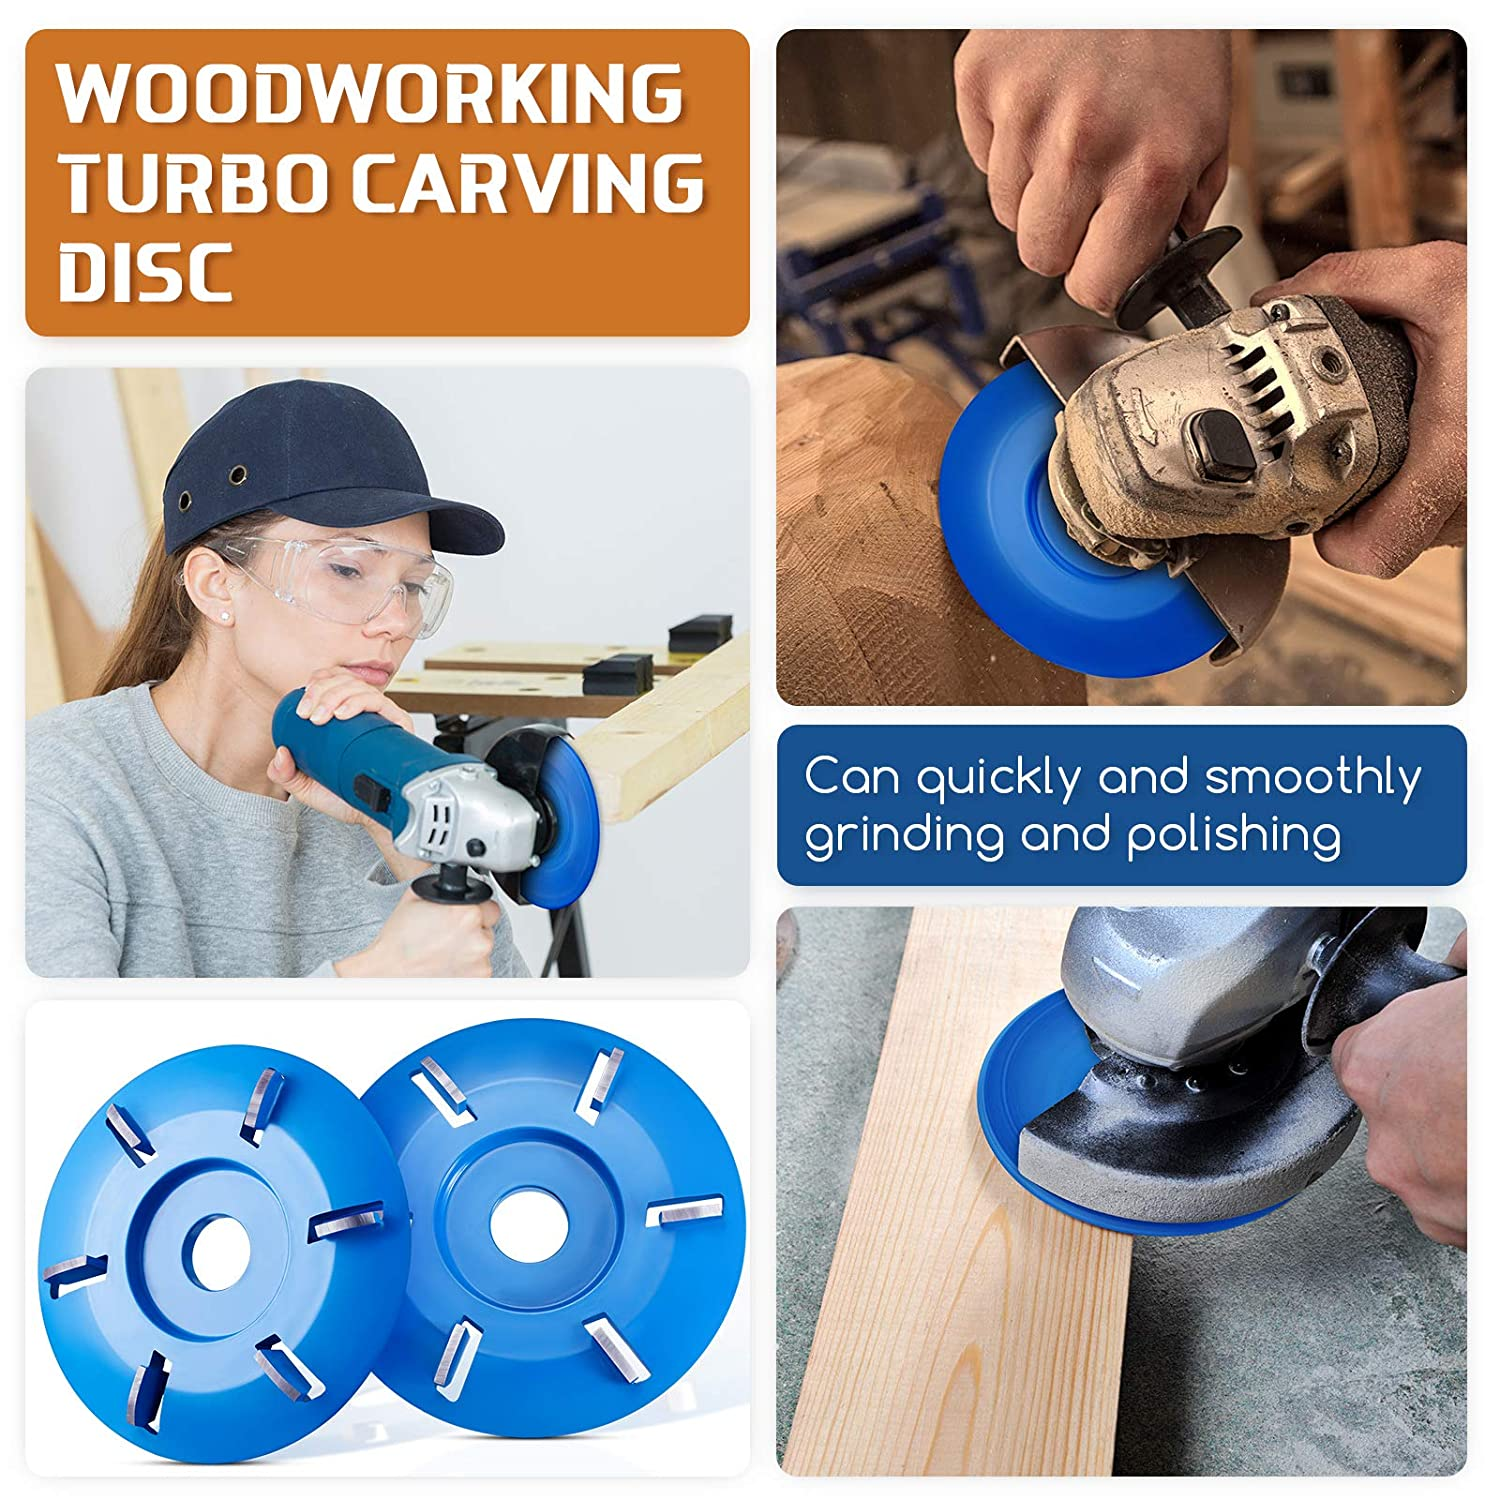 2 Pieces 6 Teeth Wood Carving Disc Tool Arc Teeth Milling Cutters Attachment Woodworking Turbo Carving Disc for 16mm Aperture Angle Grinder Blue